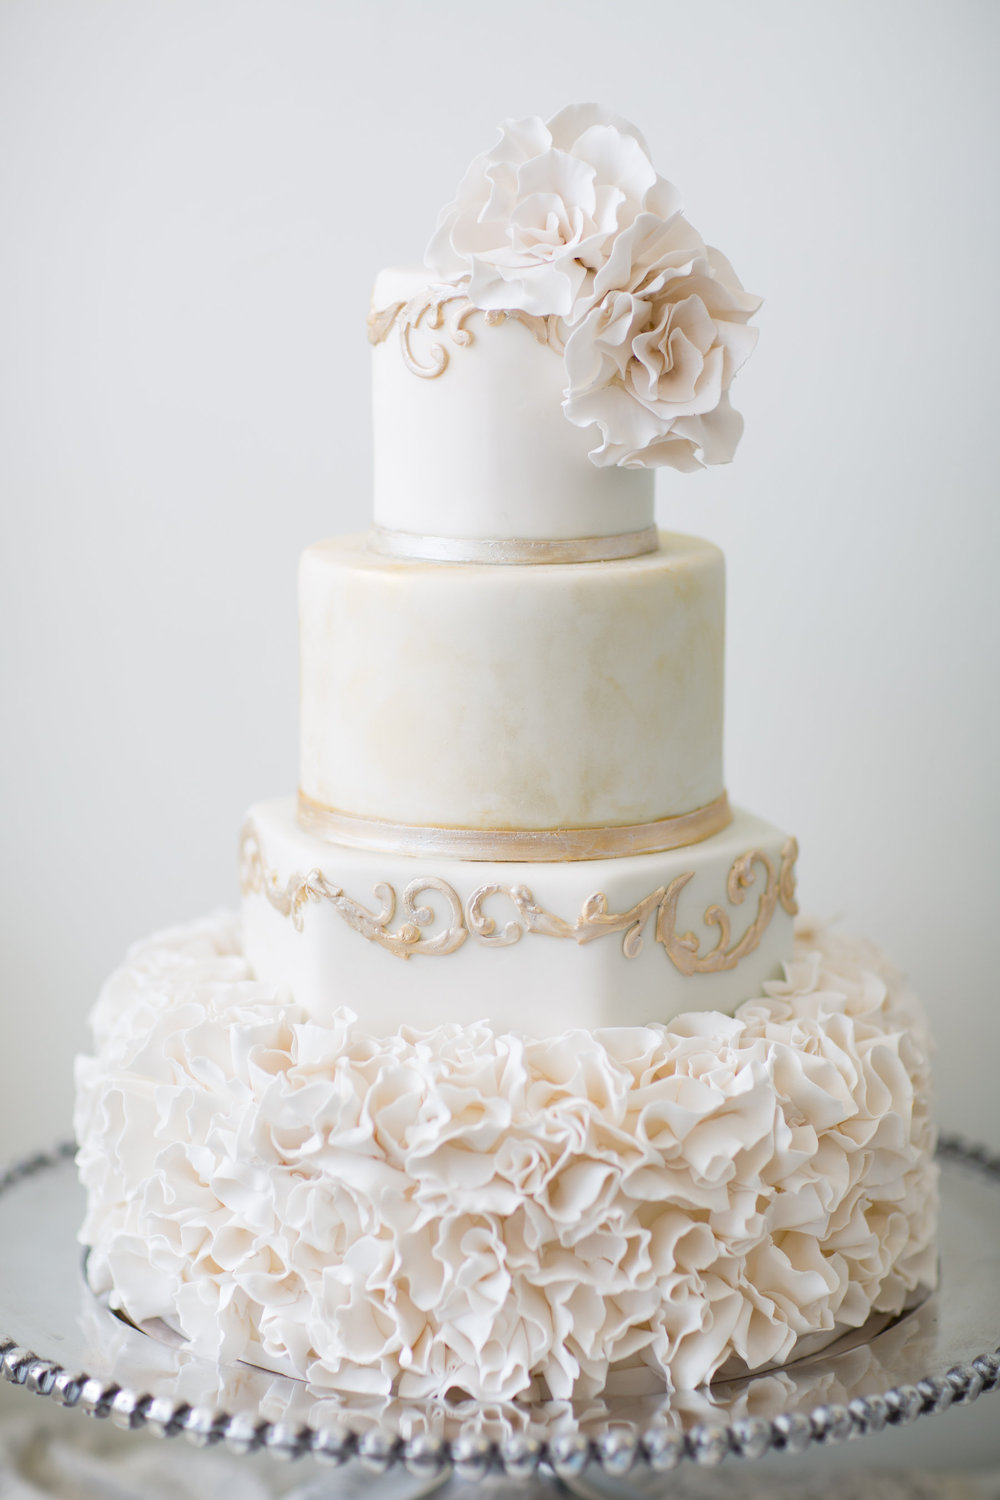 Welcome to my web site. It is my pleasure to showcase our style and  philosophy on the art of wedding cakes. From simple butter cream with  delicate flavors t